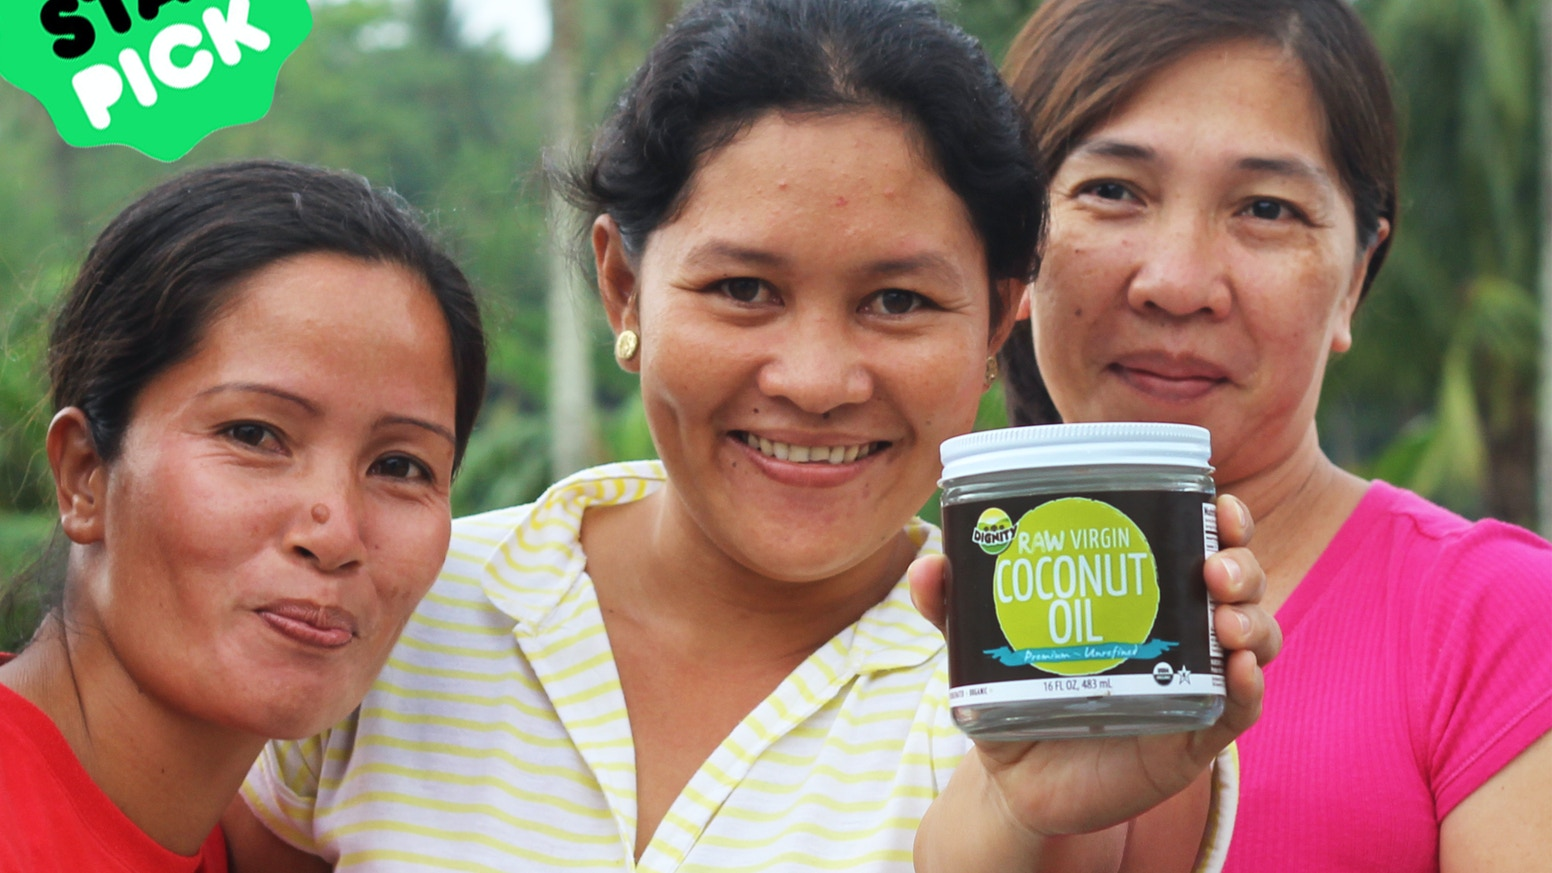 RAW Virgin Coconut Oil That Transforms Communities By